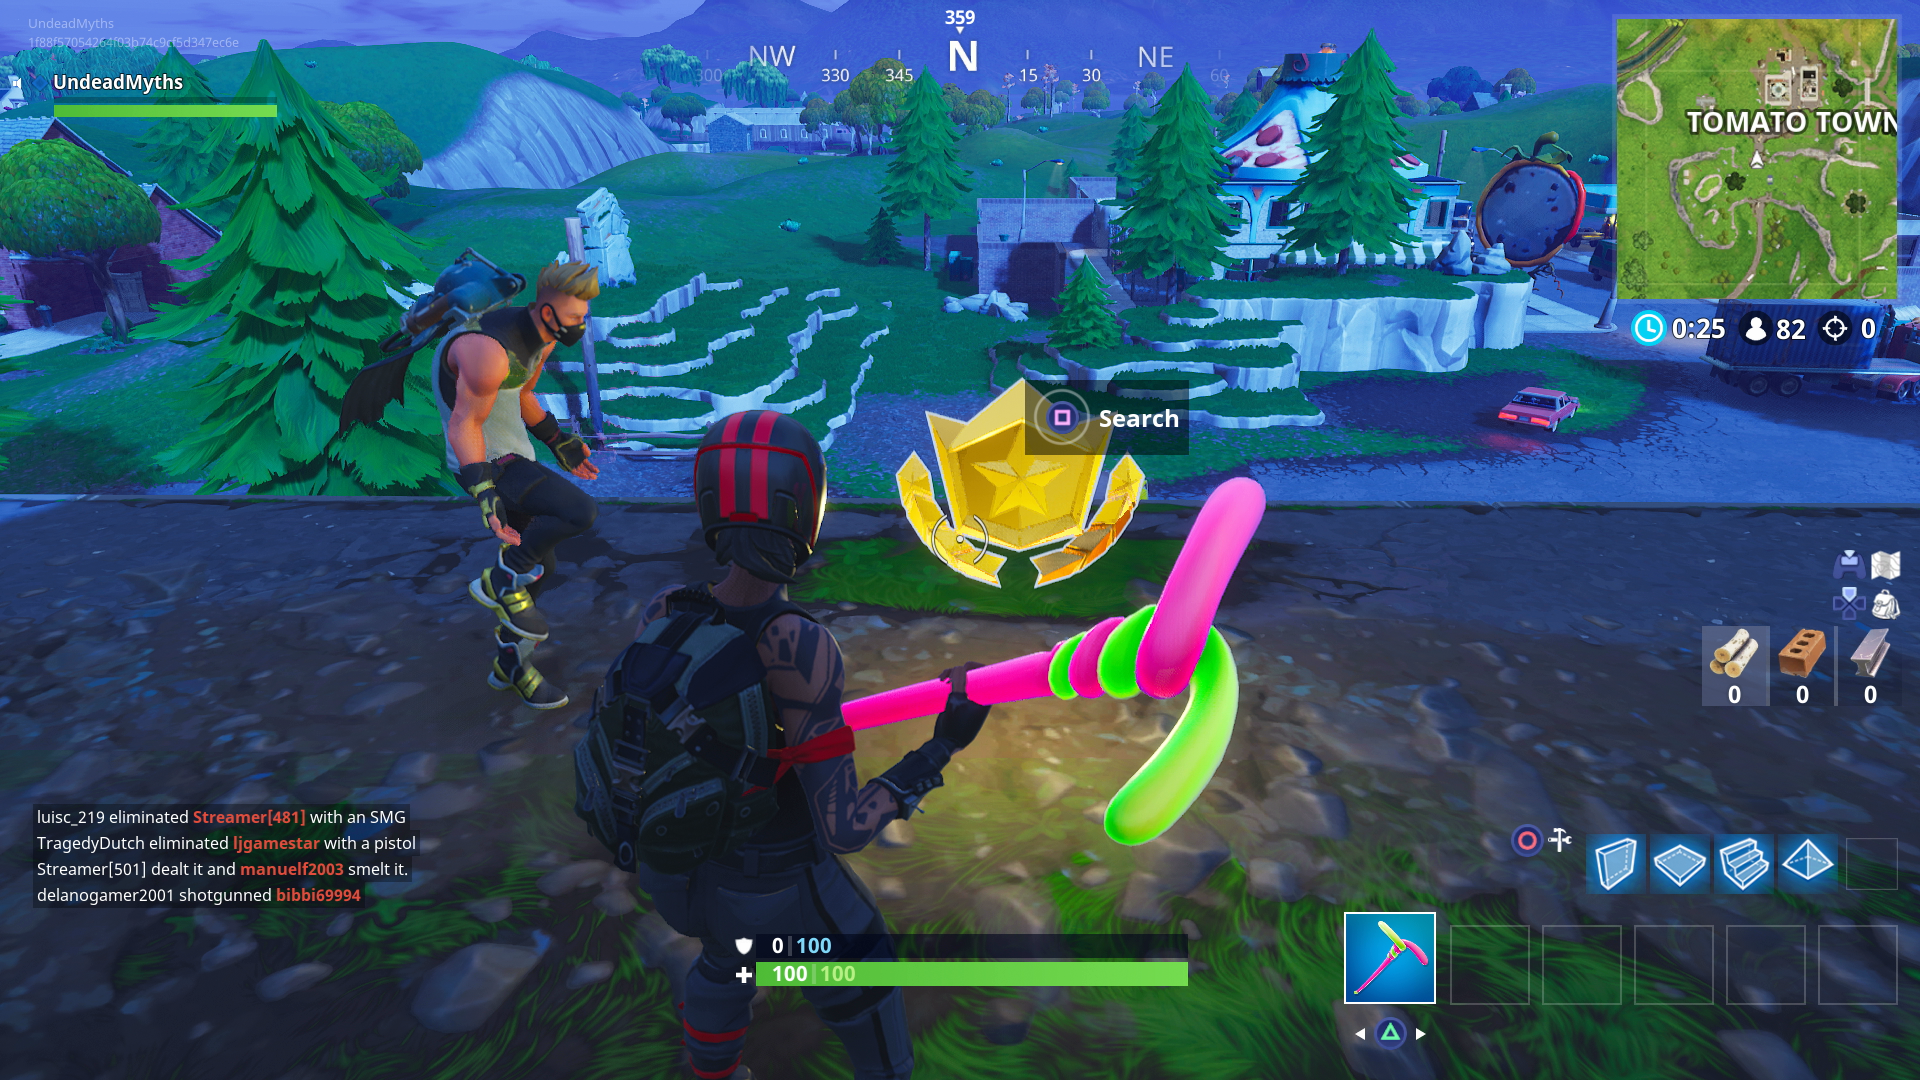 but this is far from the only challenge you can complete in this week of fortnite battle royale if you head over to our fortnite week 1 challenges guide - fortnite treasure map risky reels